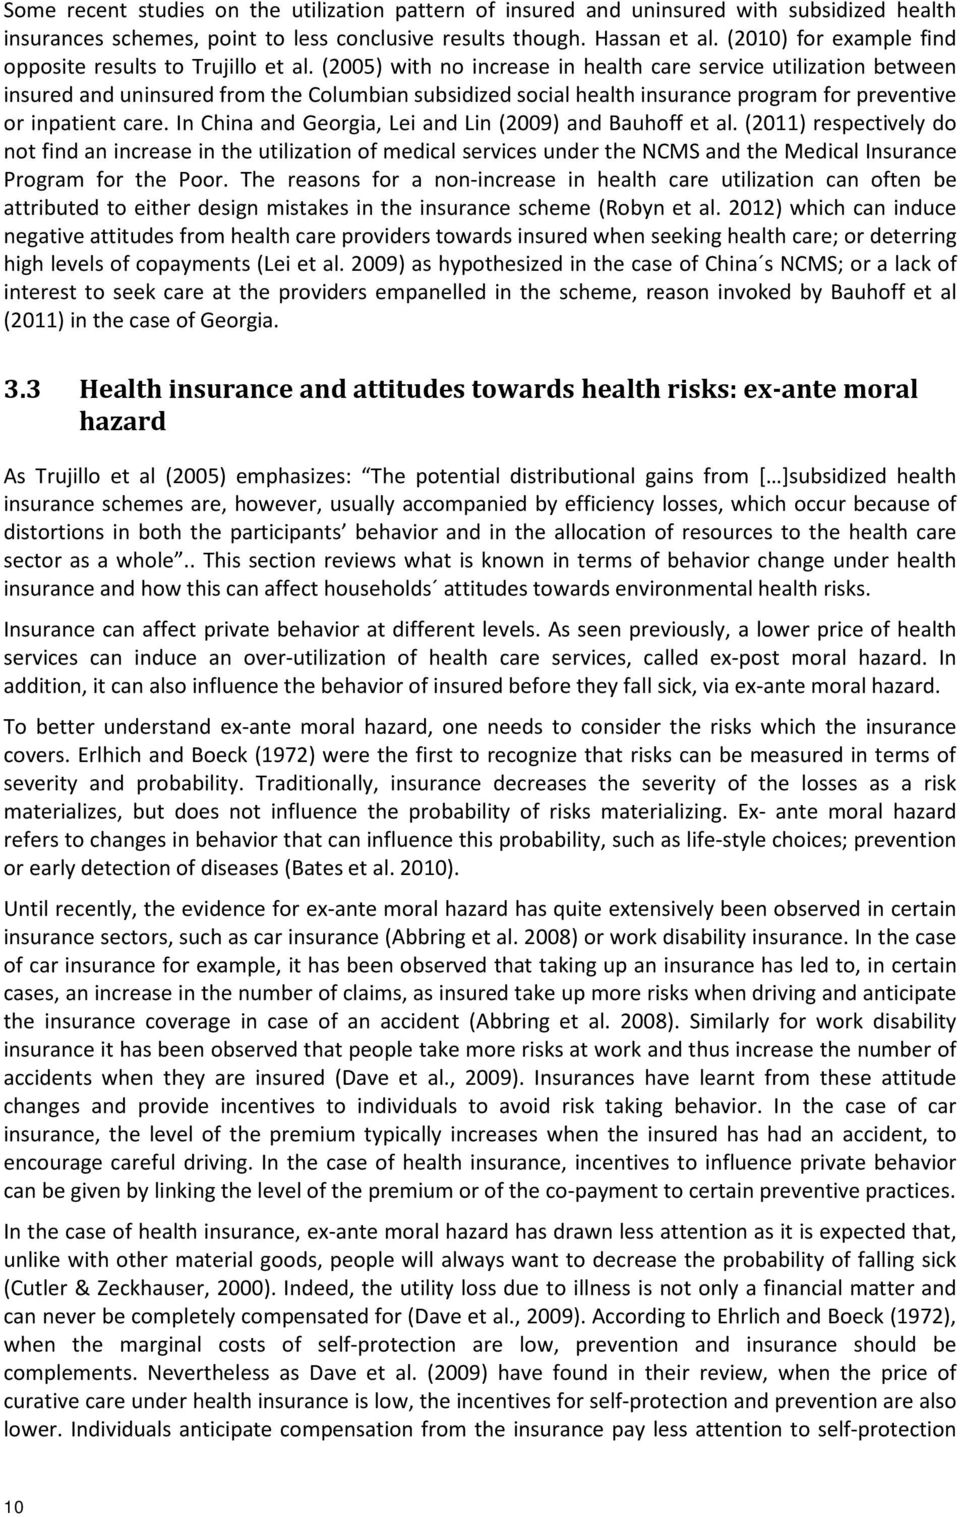 (2005) with no increase in health care service utilization between insured and uninsured from the Columbian subsidized social health insurance program for preventive or inpatient care.